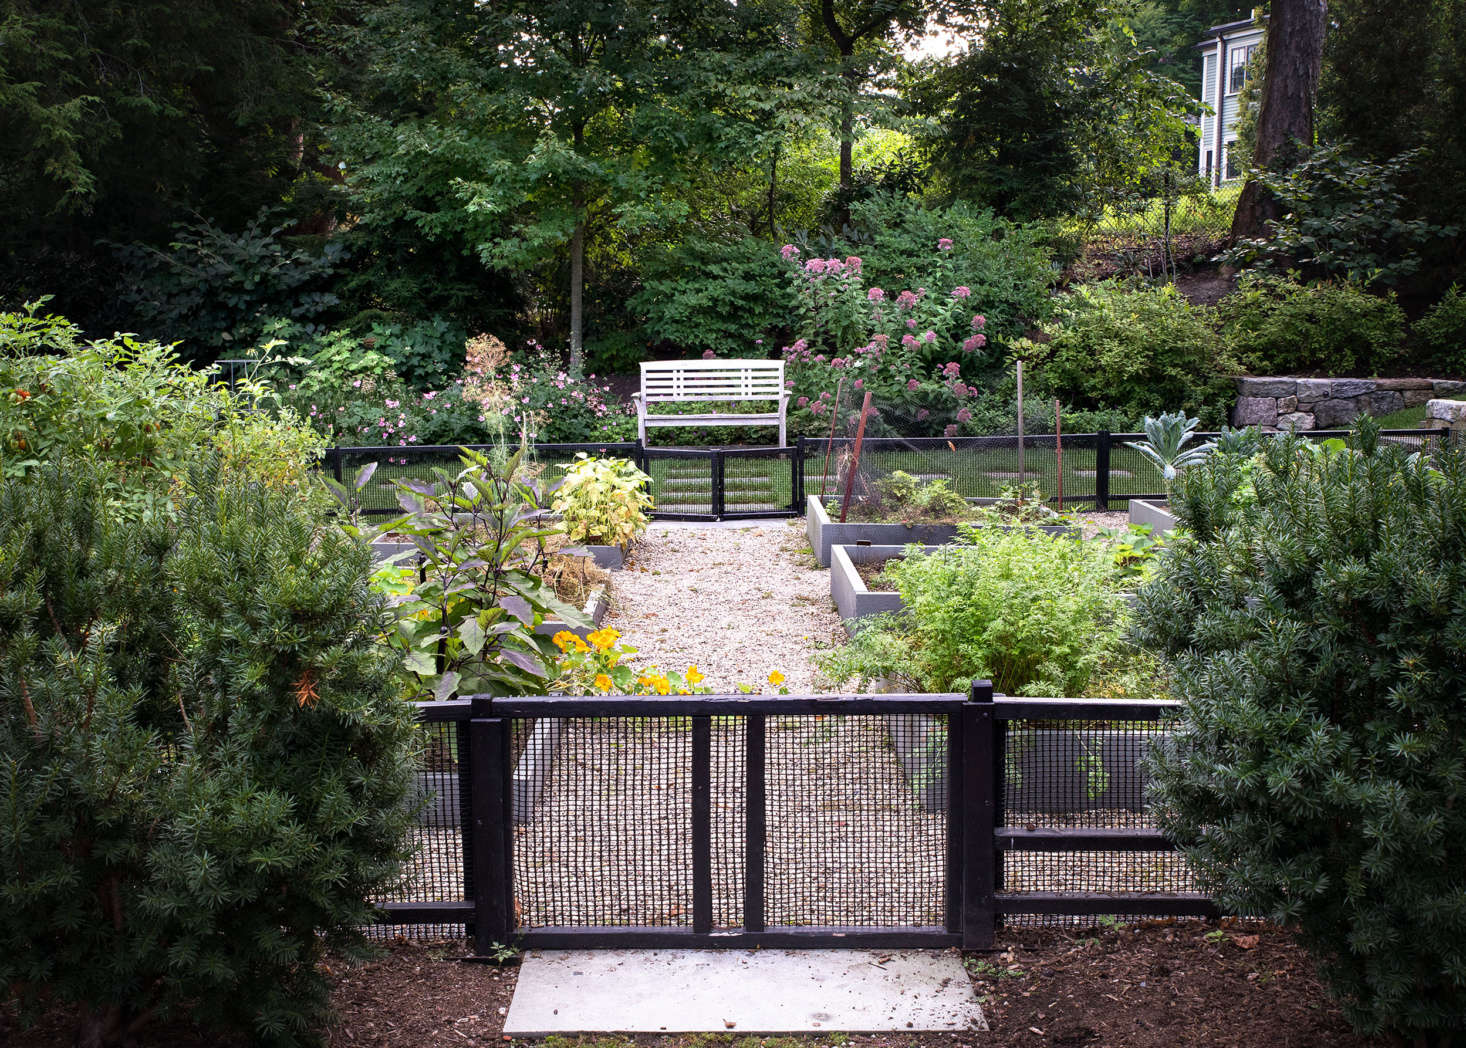 The kitchen garden, which has a number of raised beds, can be accessed from both the driveway and the lawn.